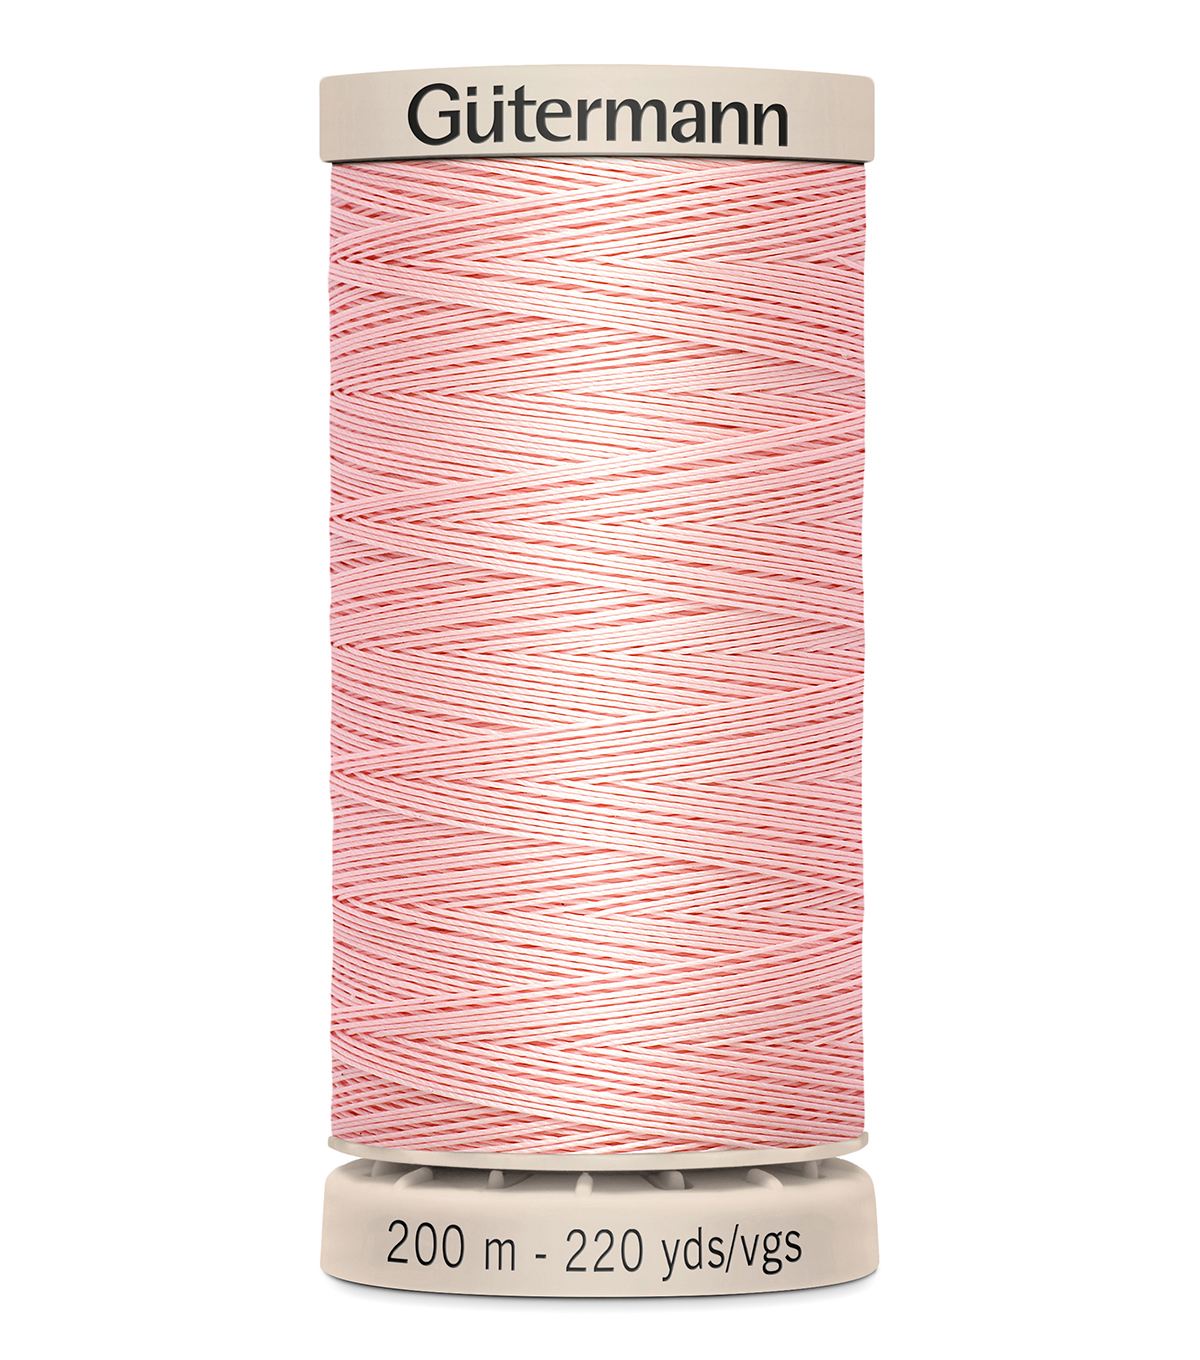 Gutermann Hand Quilting Thread 200 Meters (220 Yrds)-Primary, Pink #2538